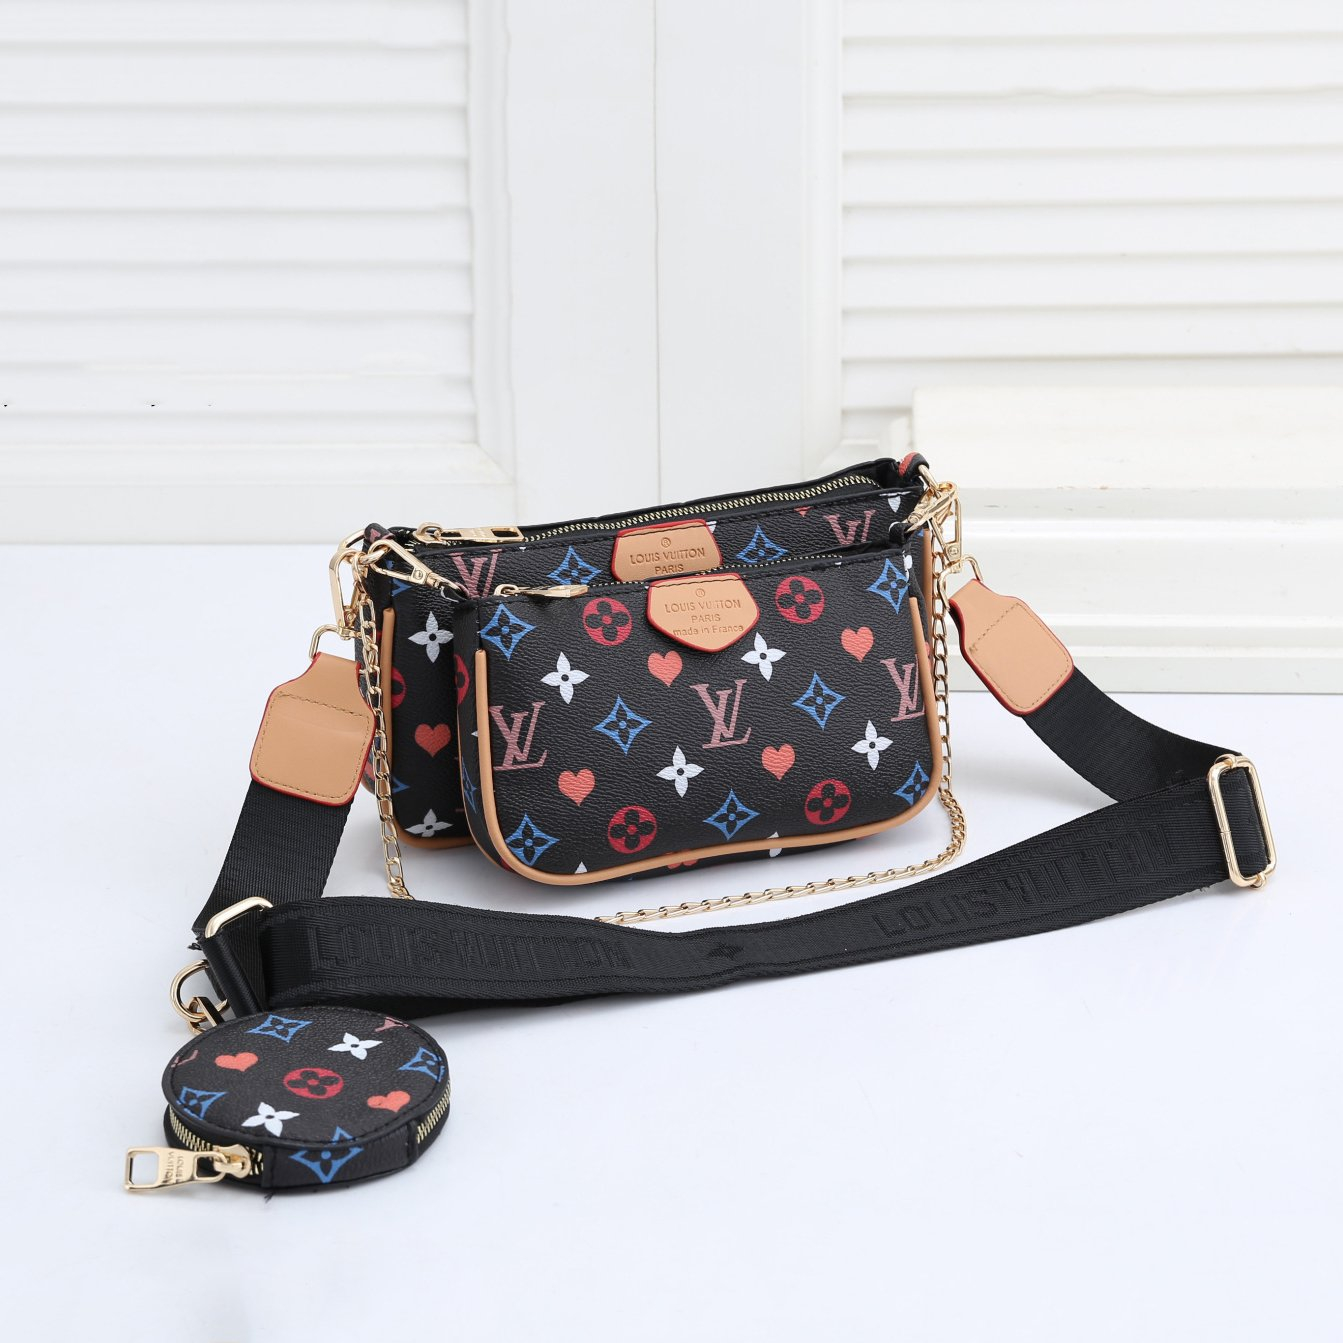 Image of Louis Vuitton LV new presbyopic two-piece popular one-shoulder messenger bag